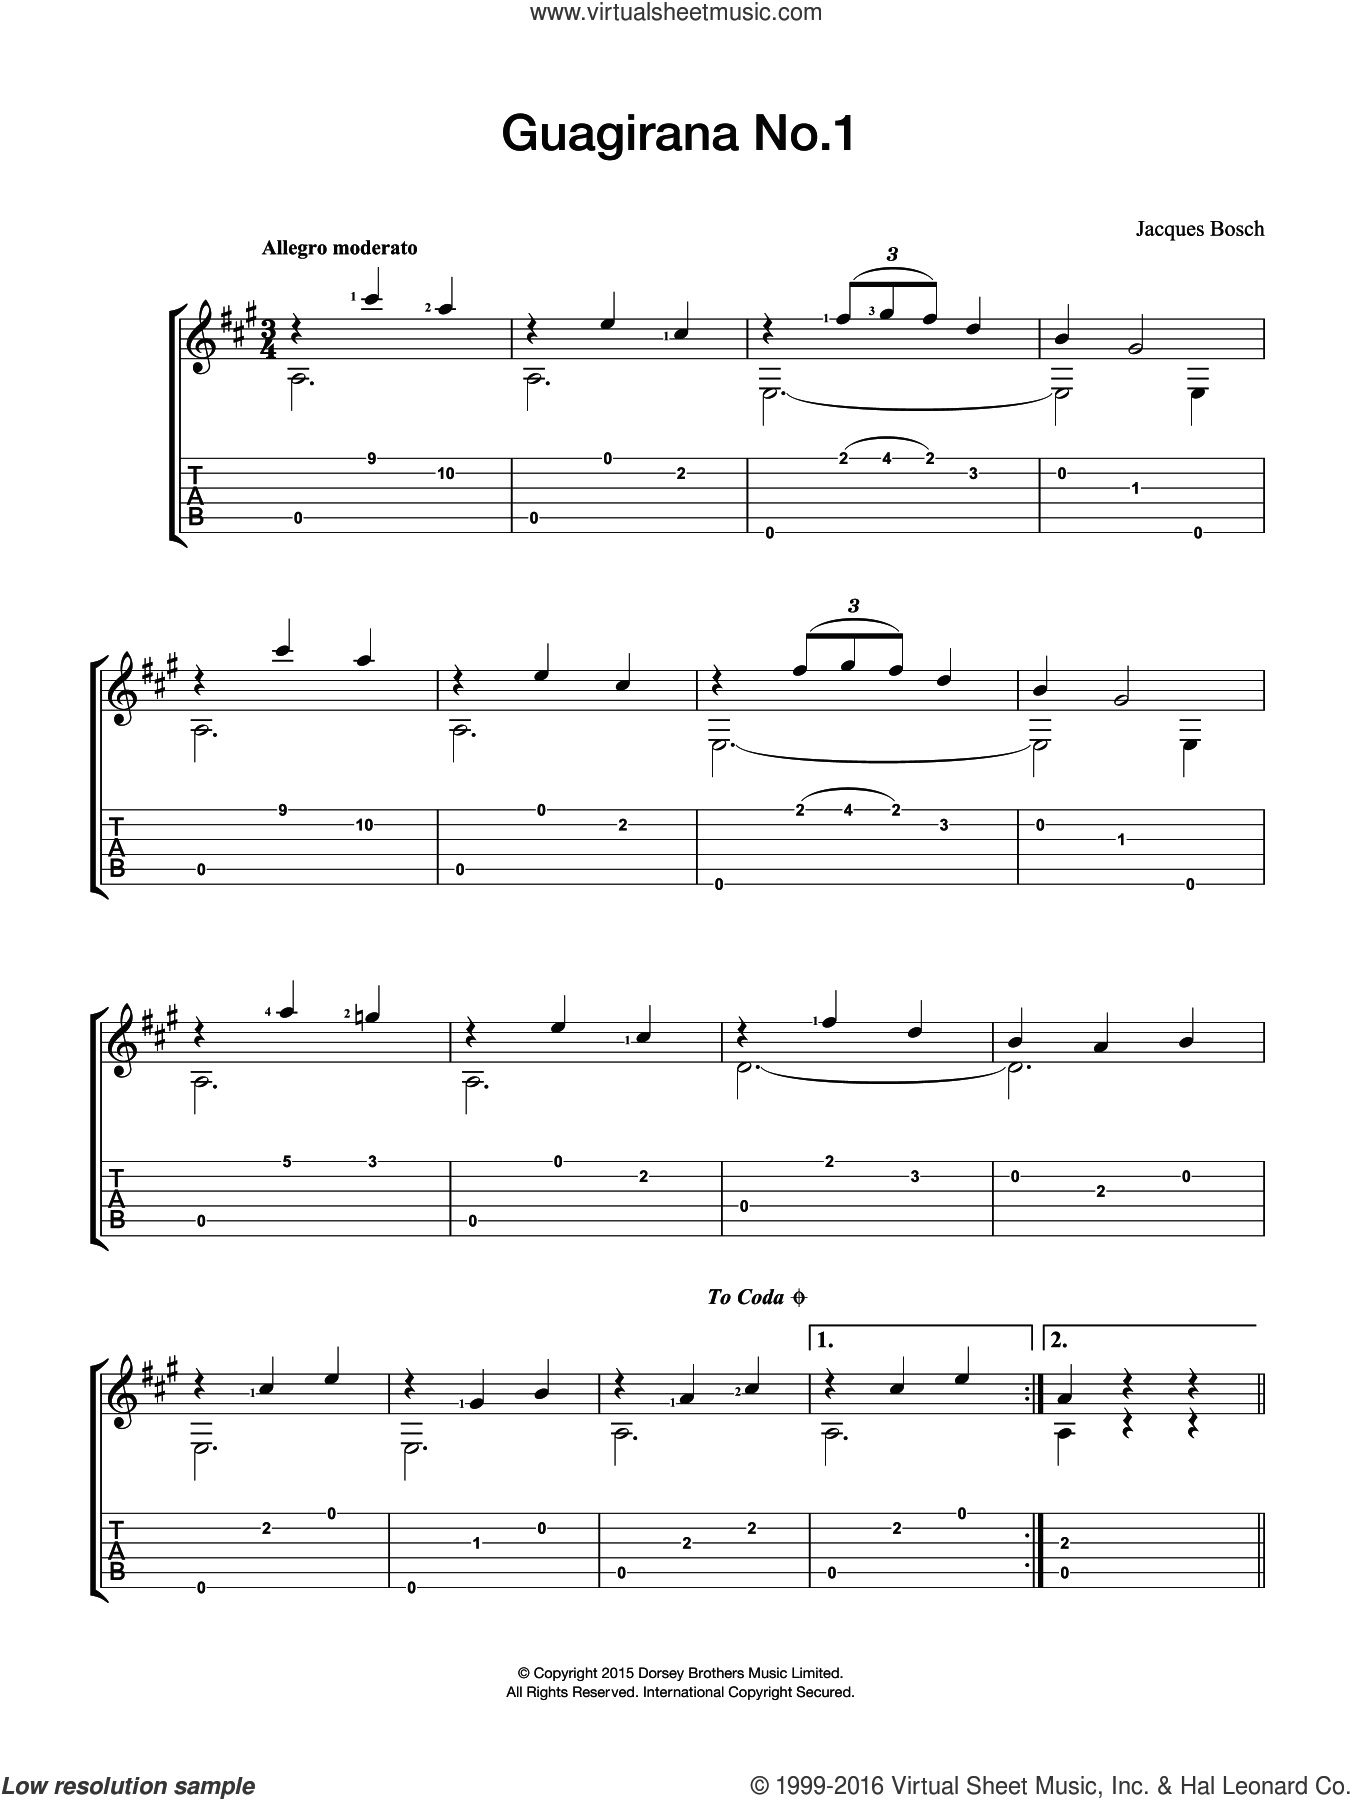 Guagirana No. 1 sheet music for guitar solo (chords) by Jacques Bosch, classical score, easy guitar (chords). Score Image Preview.